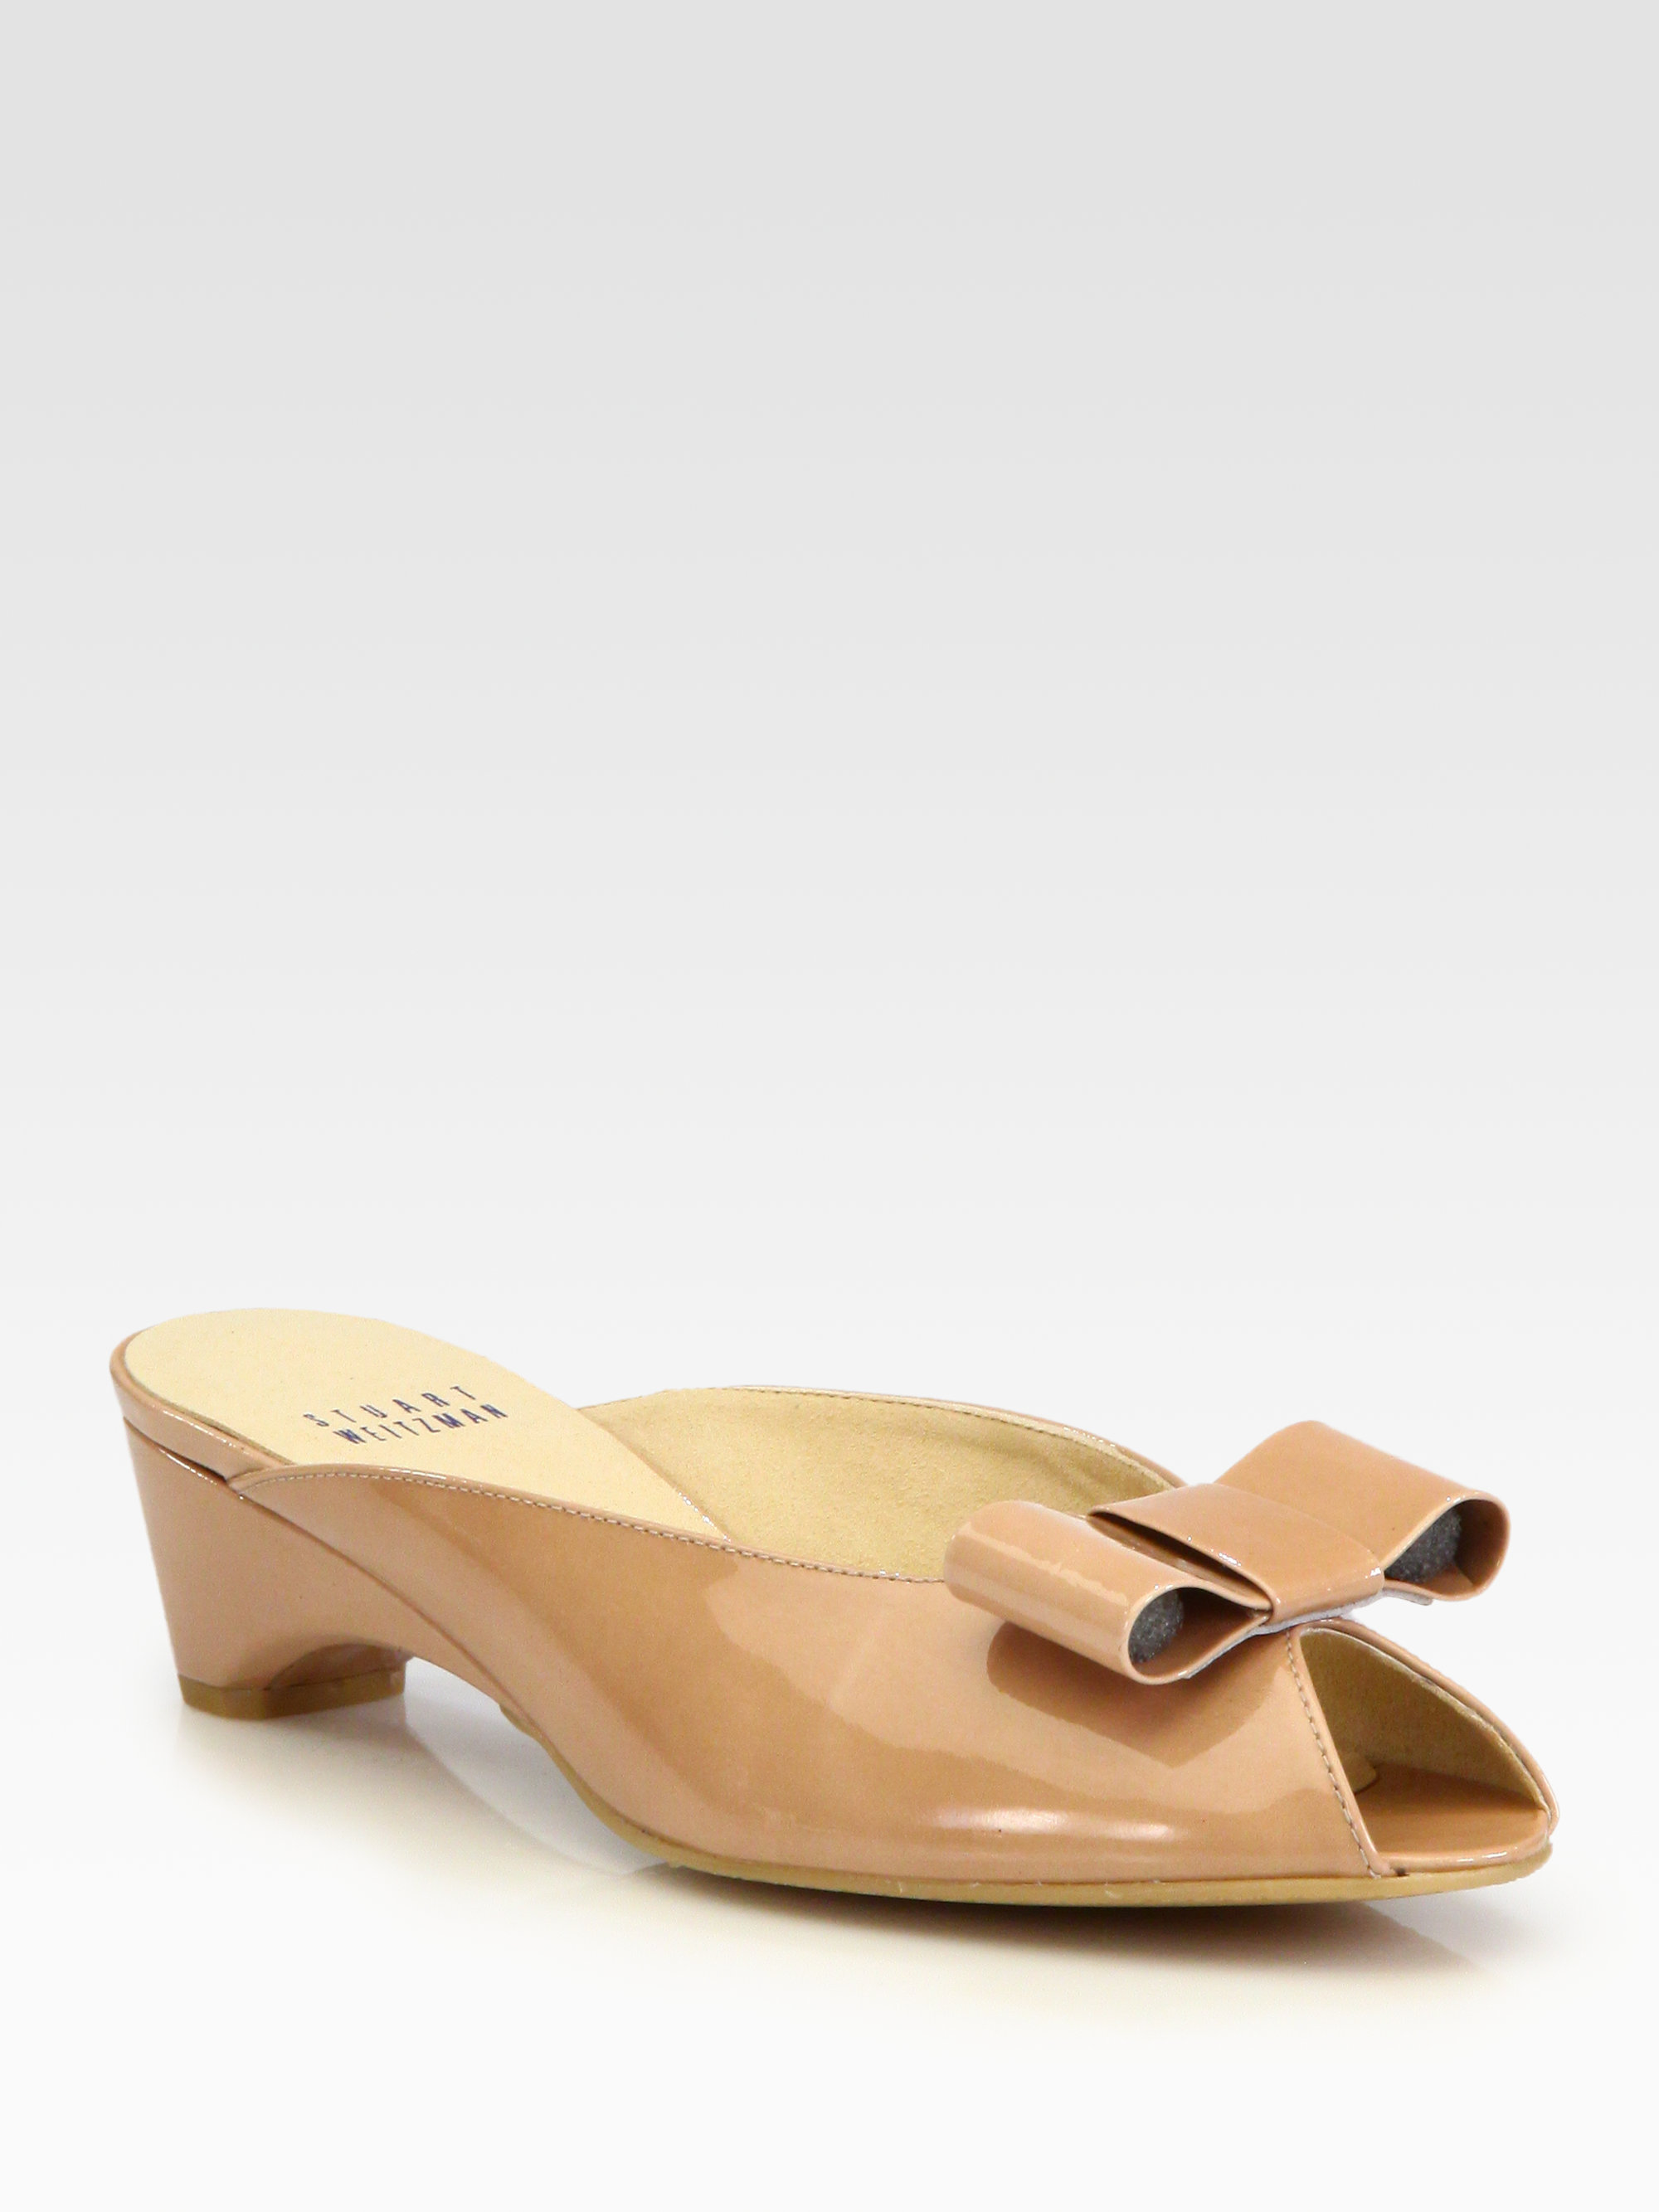 Lyst Stuart Weitzman Candy Patent Leather Bow Pumps In